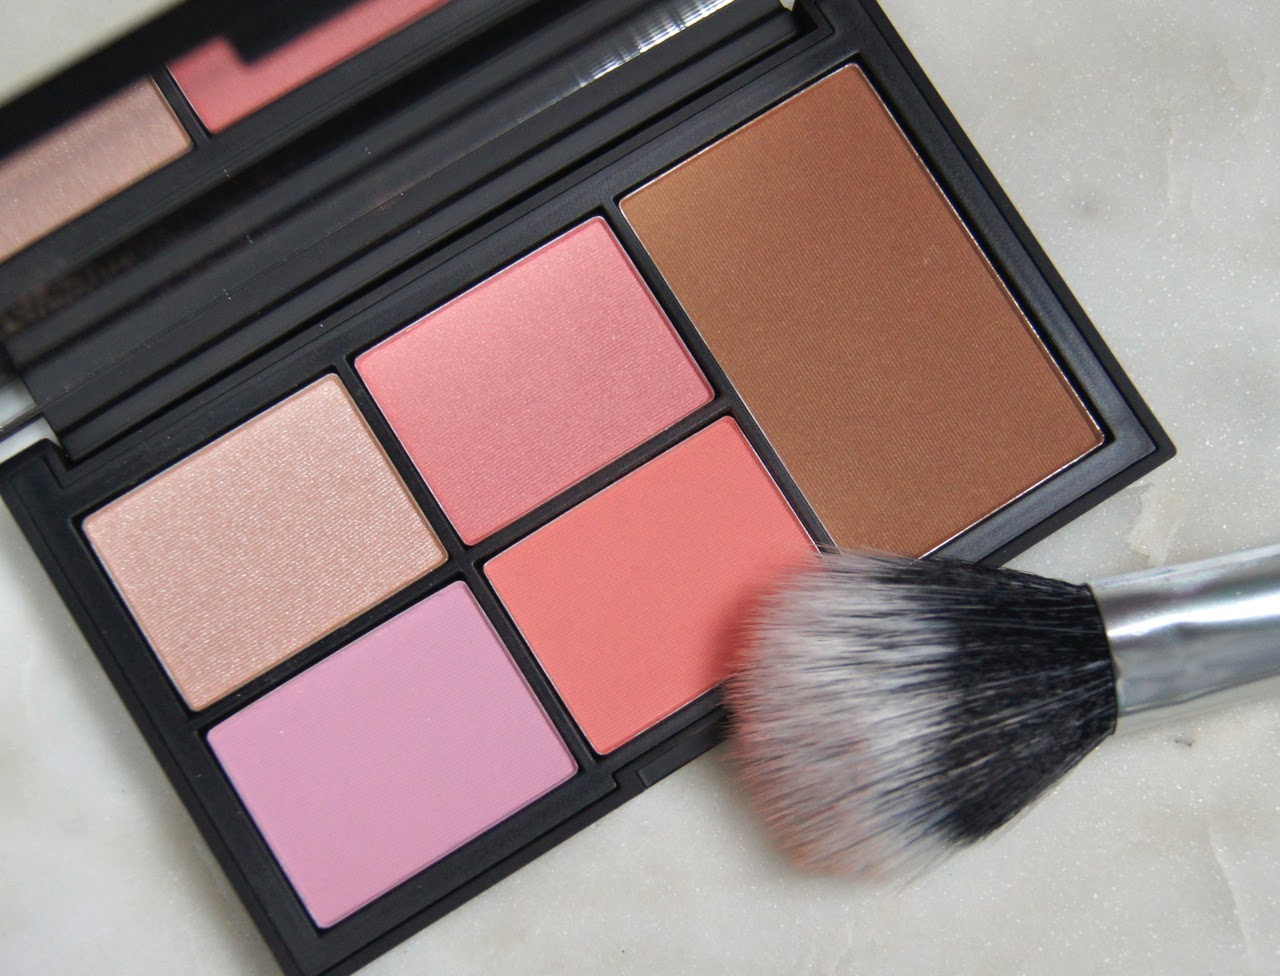 nars virtual domination cheek palette review swatches blush highlight